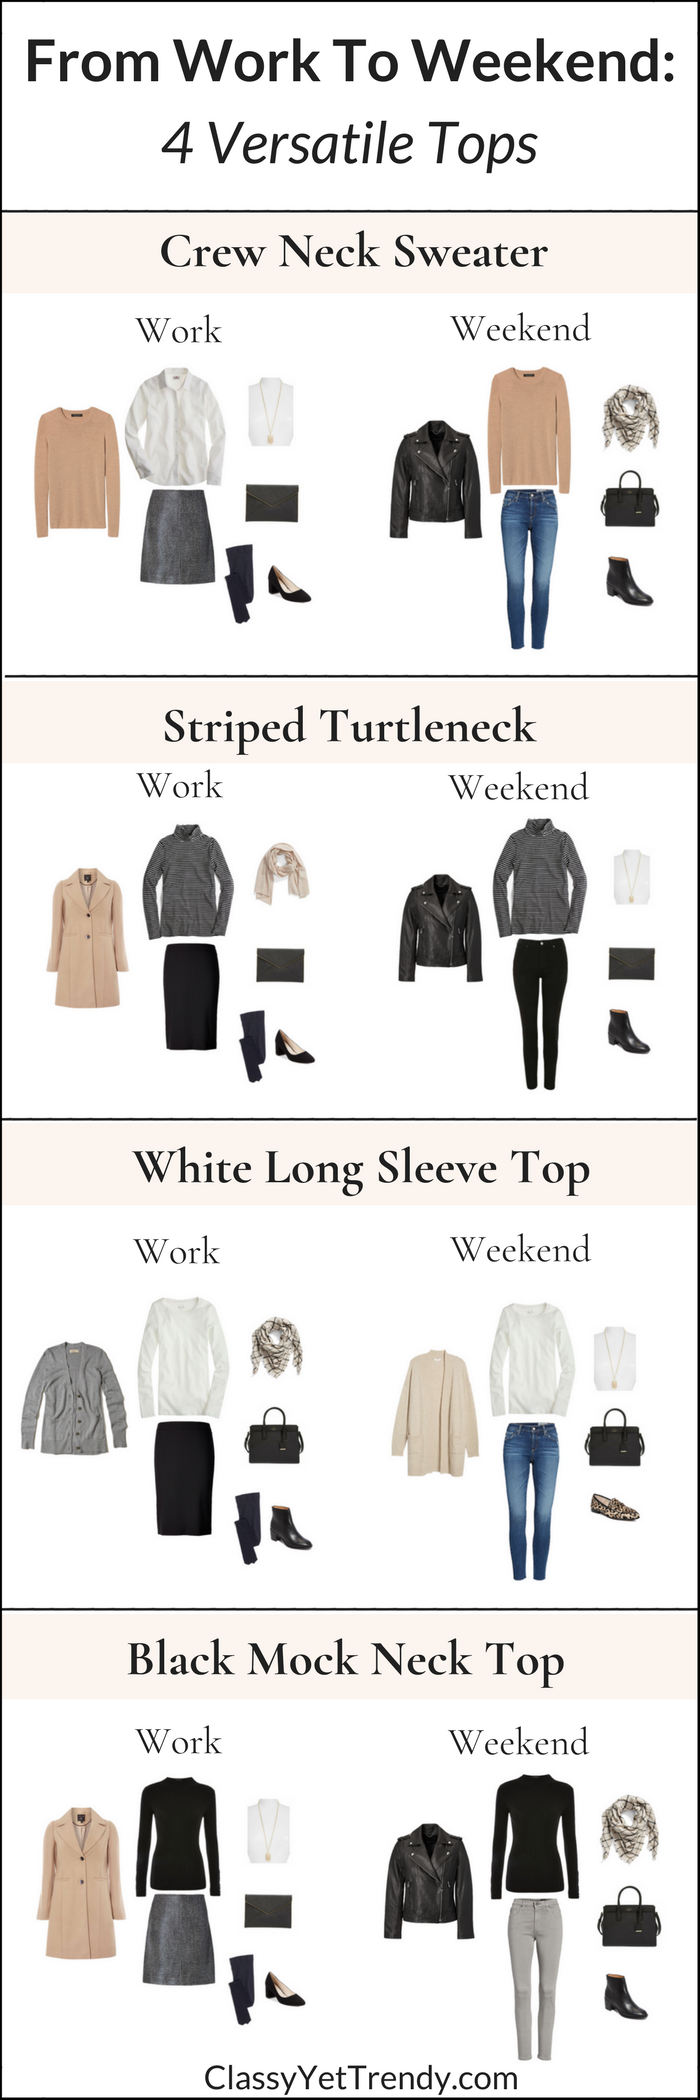 From Work To Weekend - 4 Versatile Tops